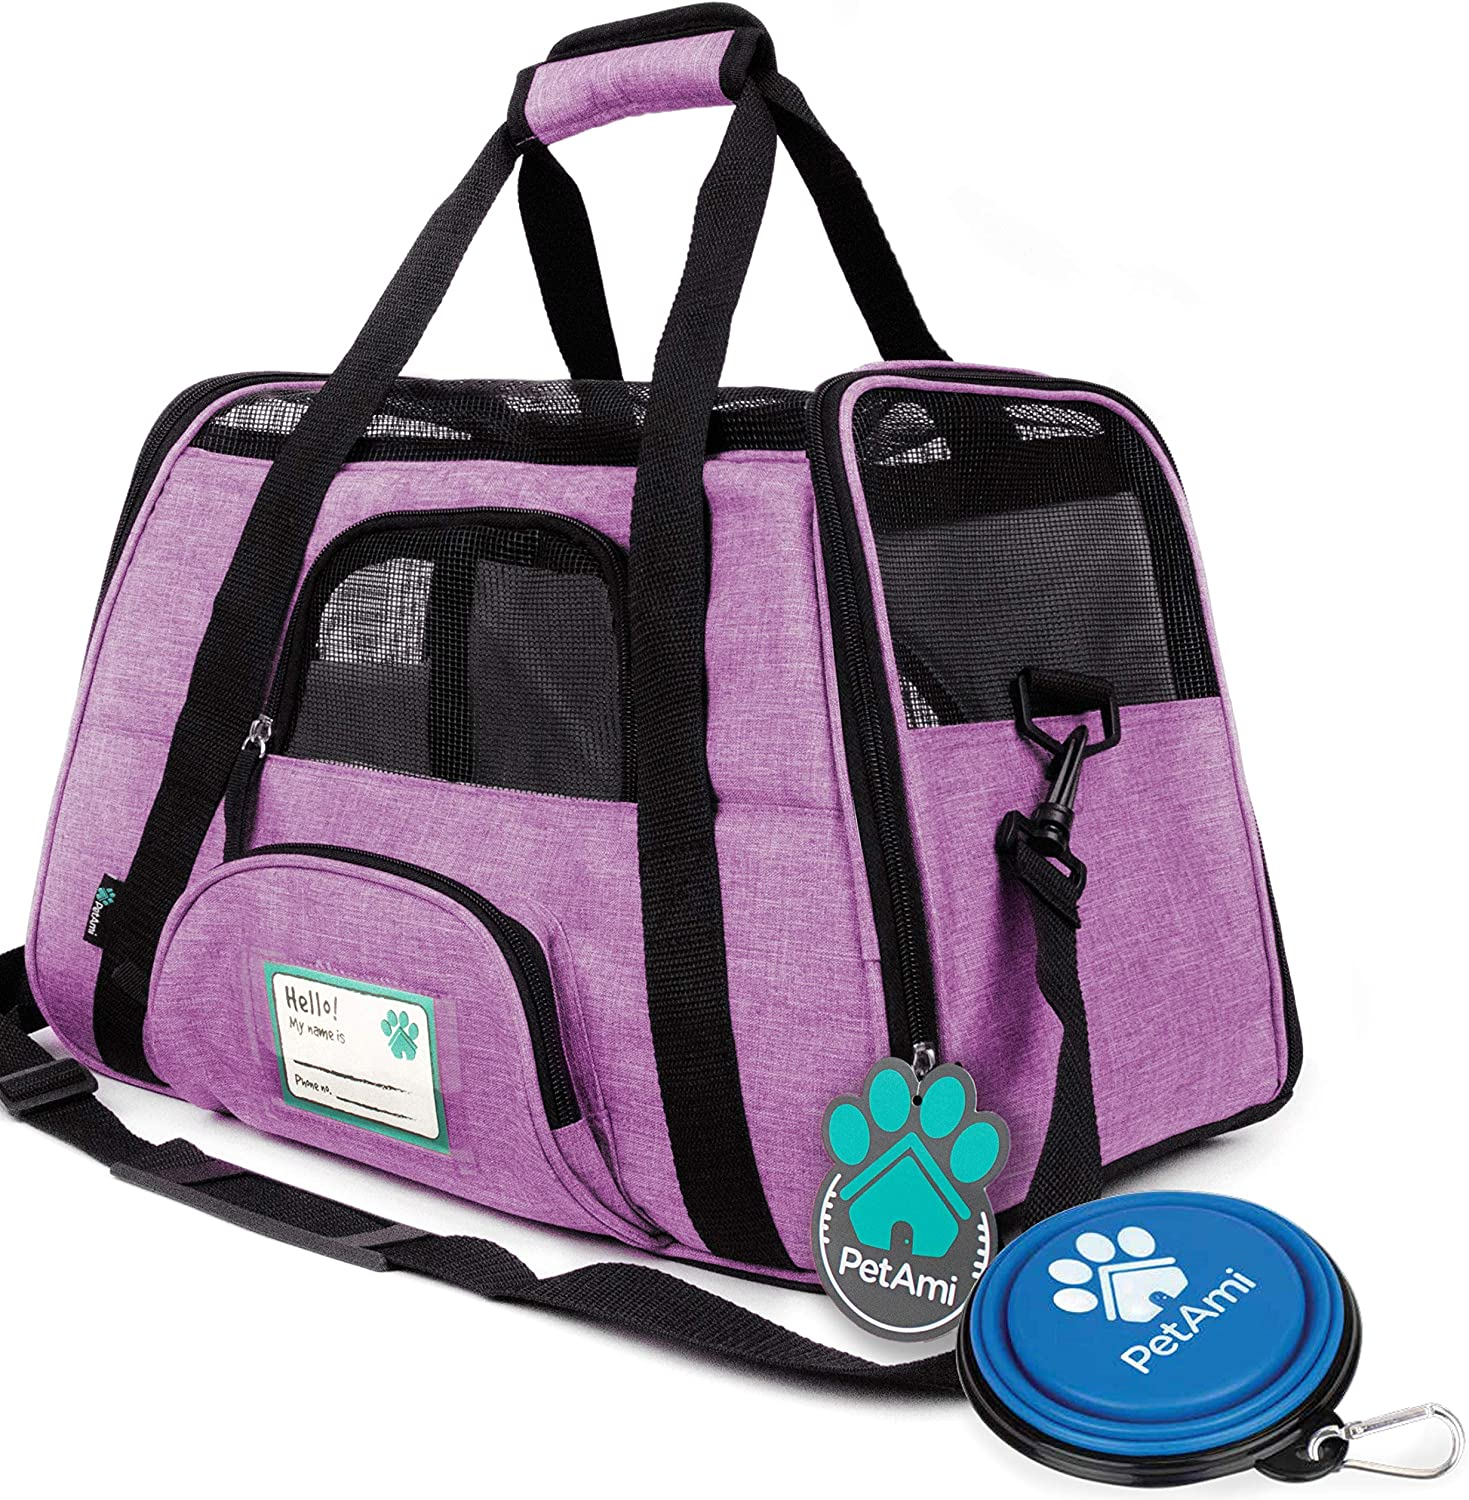 PetAmi Premium Airline Approved Soft-Sided Pet Travel Carrier | Ventilated, Comfortable Design with Safety Features | Ideal for Small to Medium Sized Cats, Dogs, and Pets (Large, Heather Purple)